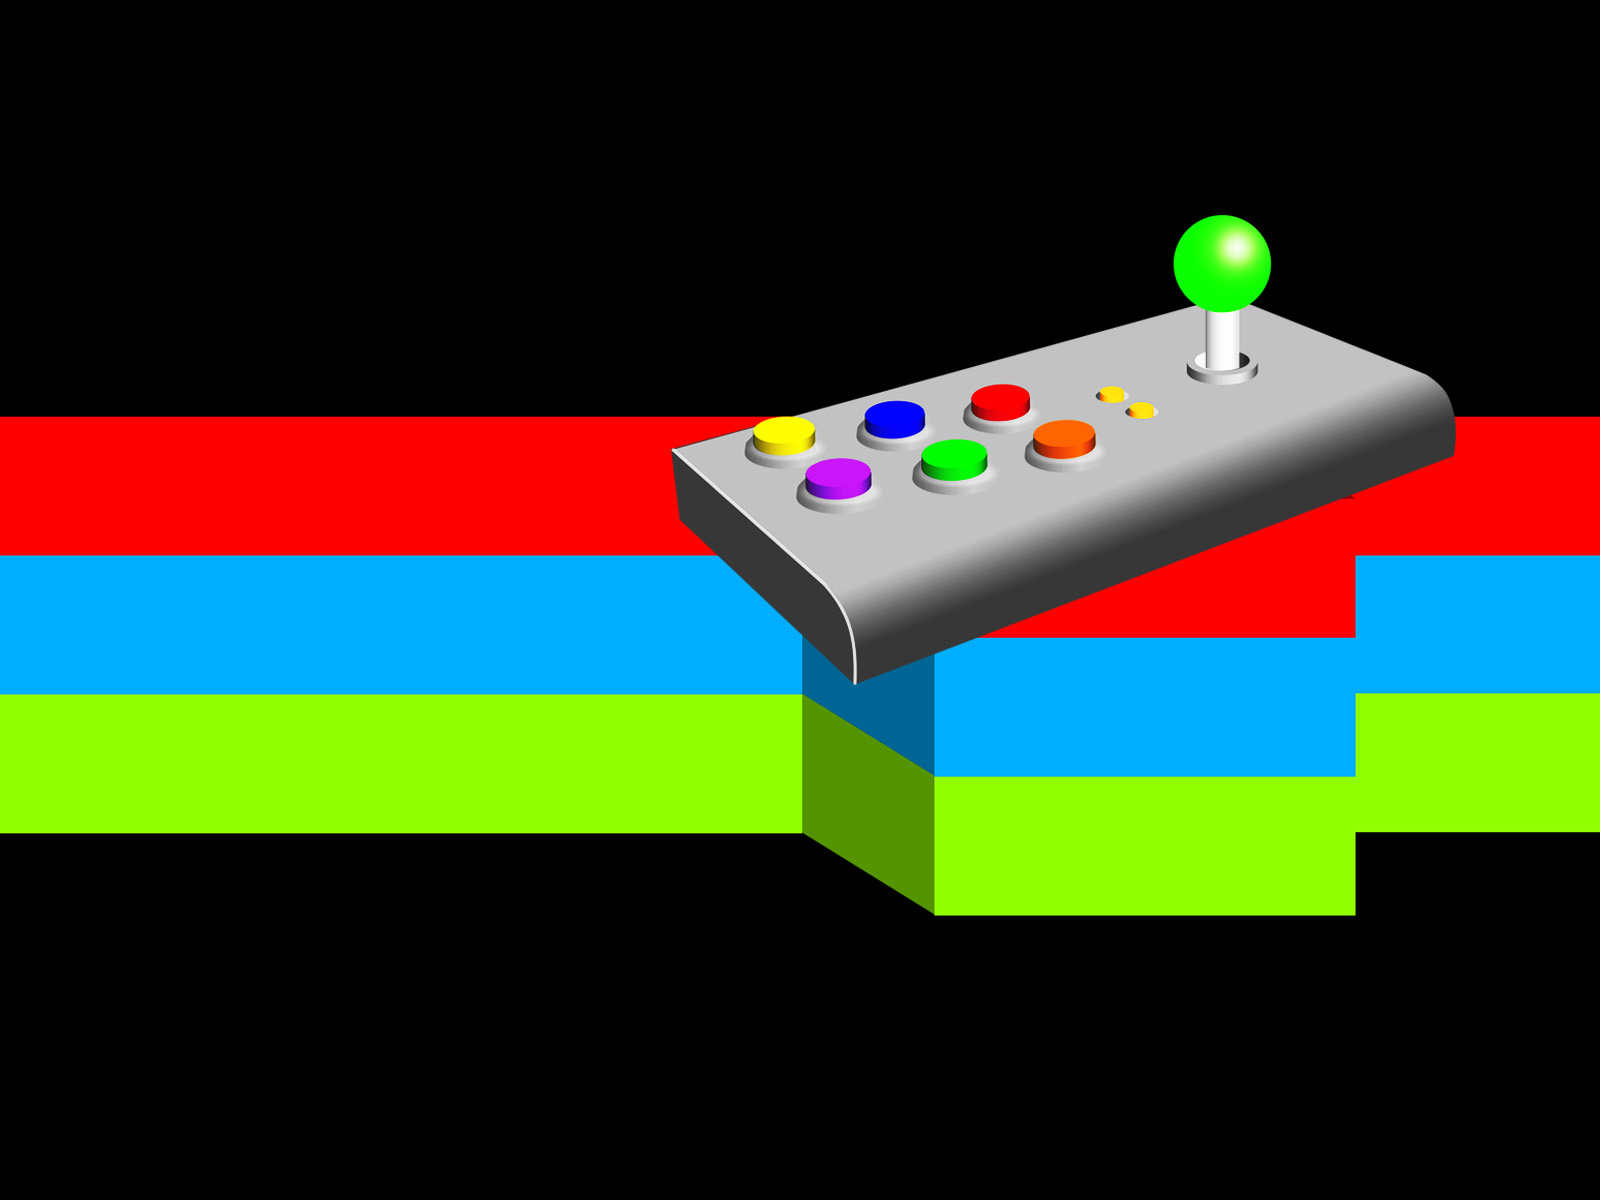 tv game show powerpoint templates - retro arcade joystick game backgrounds games technology